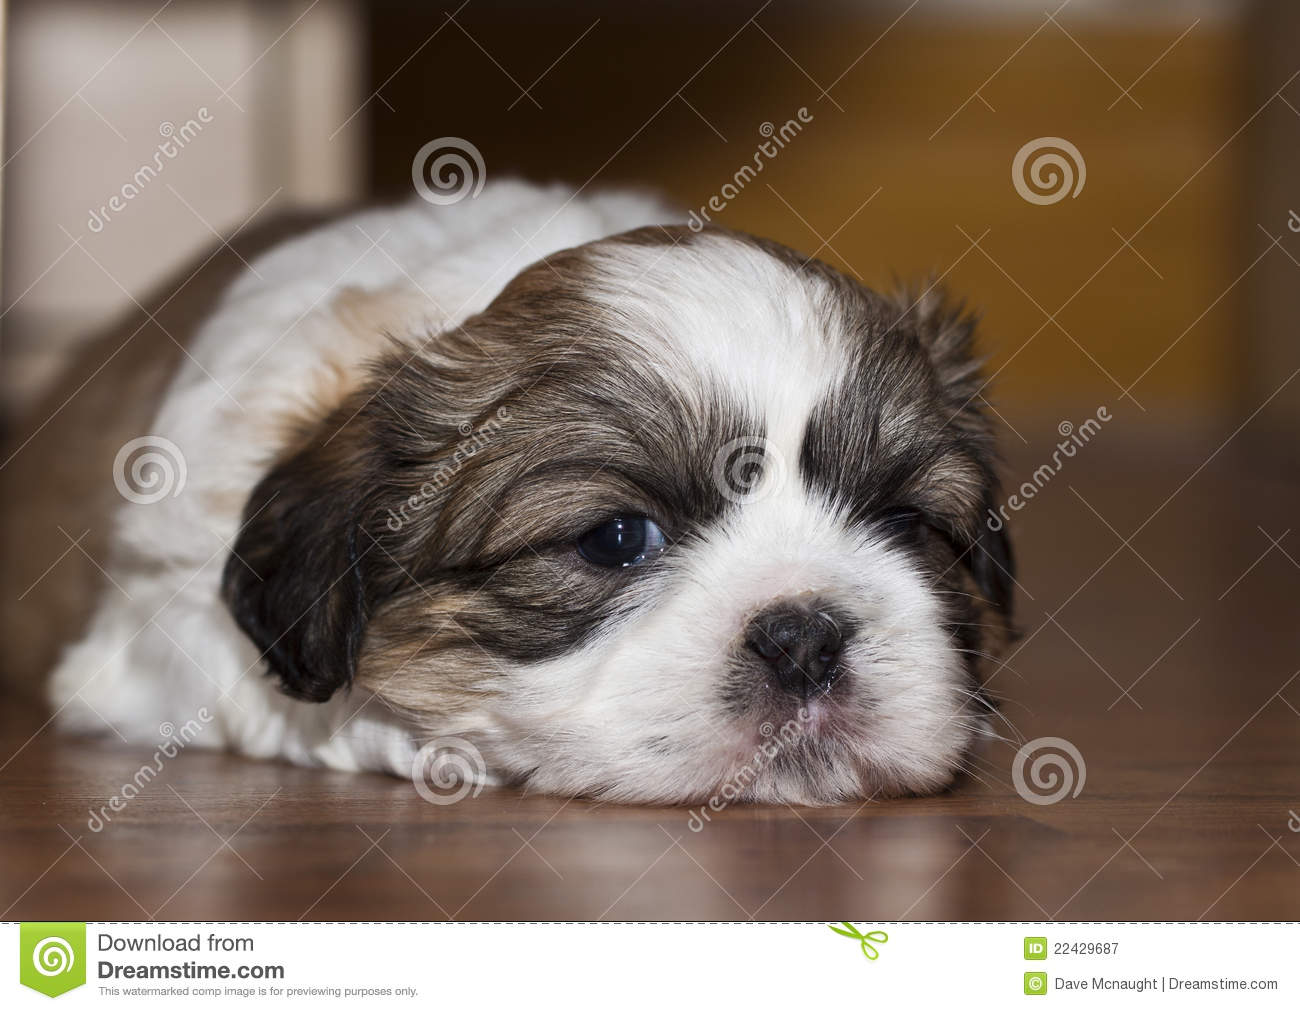 Cute Shih Tzu Dog Stock Image Image Of Looking Adorable 22429687